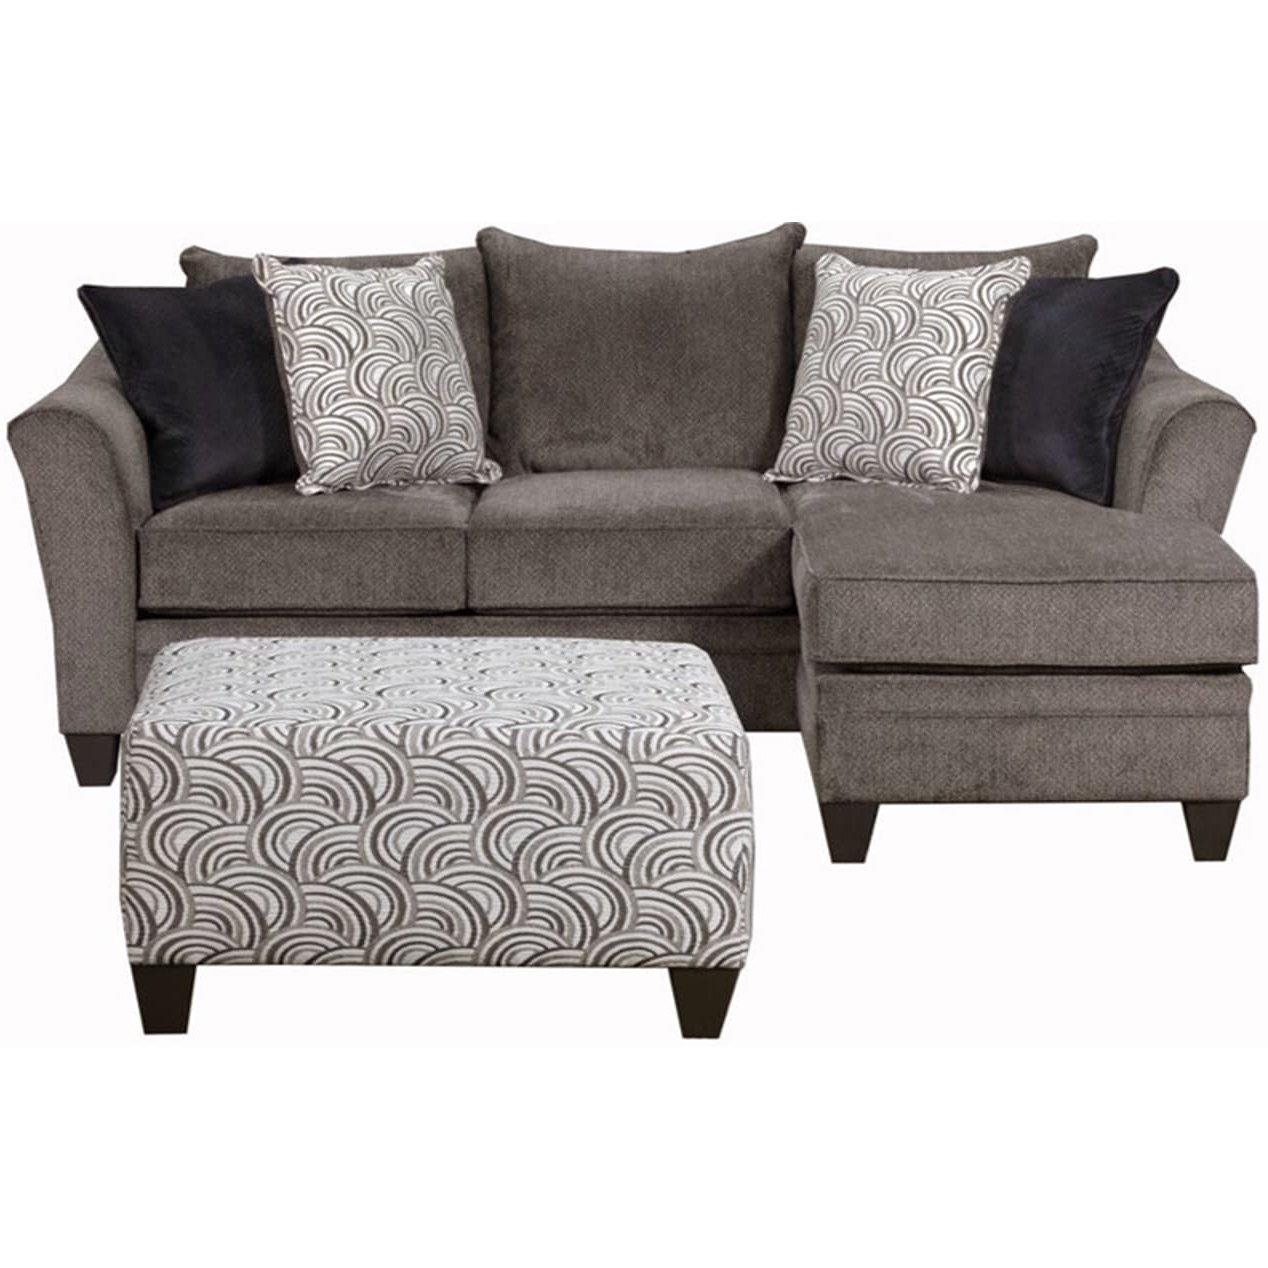 Preferred Simmons Chaise Sofas In Simmons Upholstery Albany Pewter Sofa Chaise – Free Shipping Today (View 9 of 20)